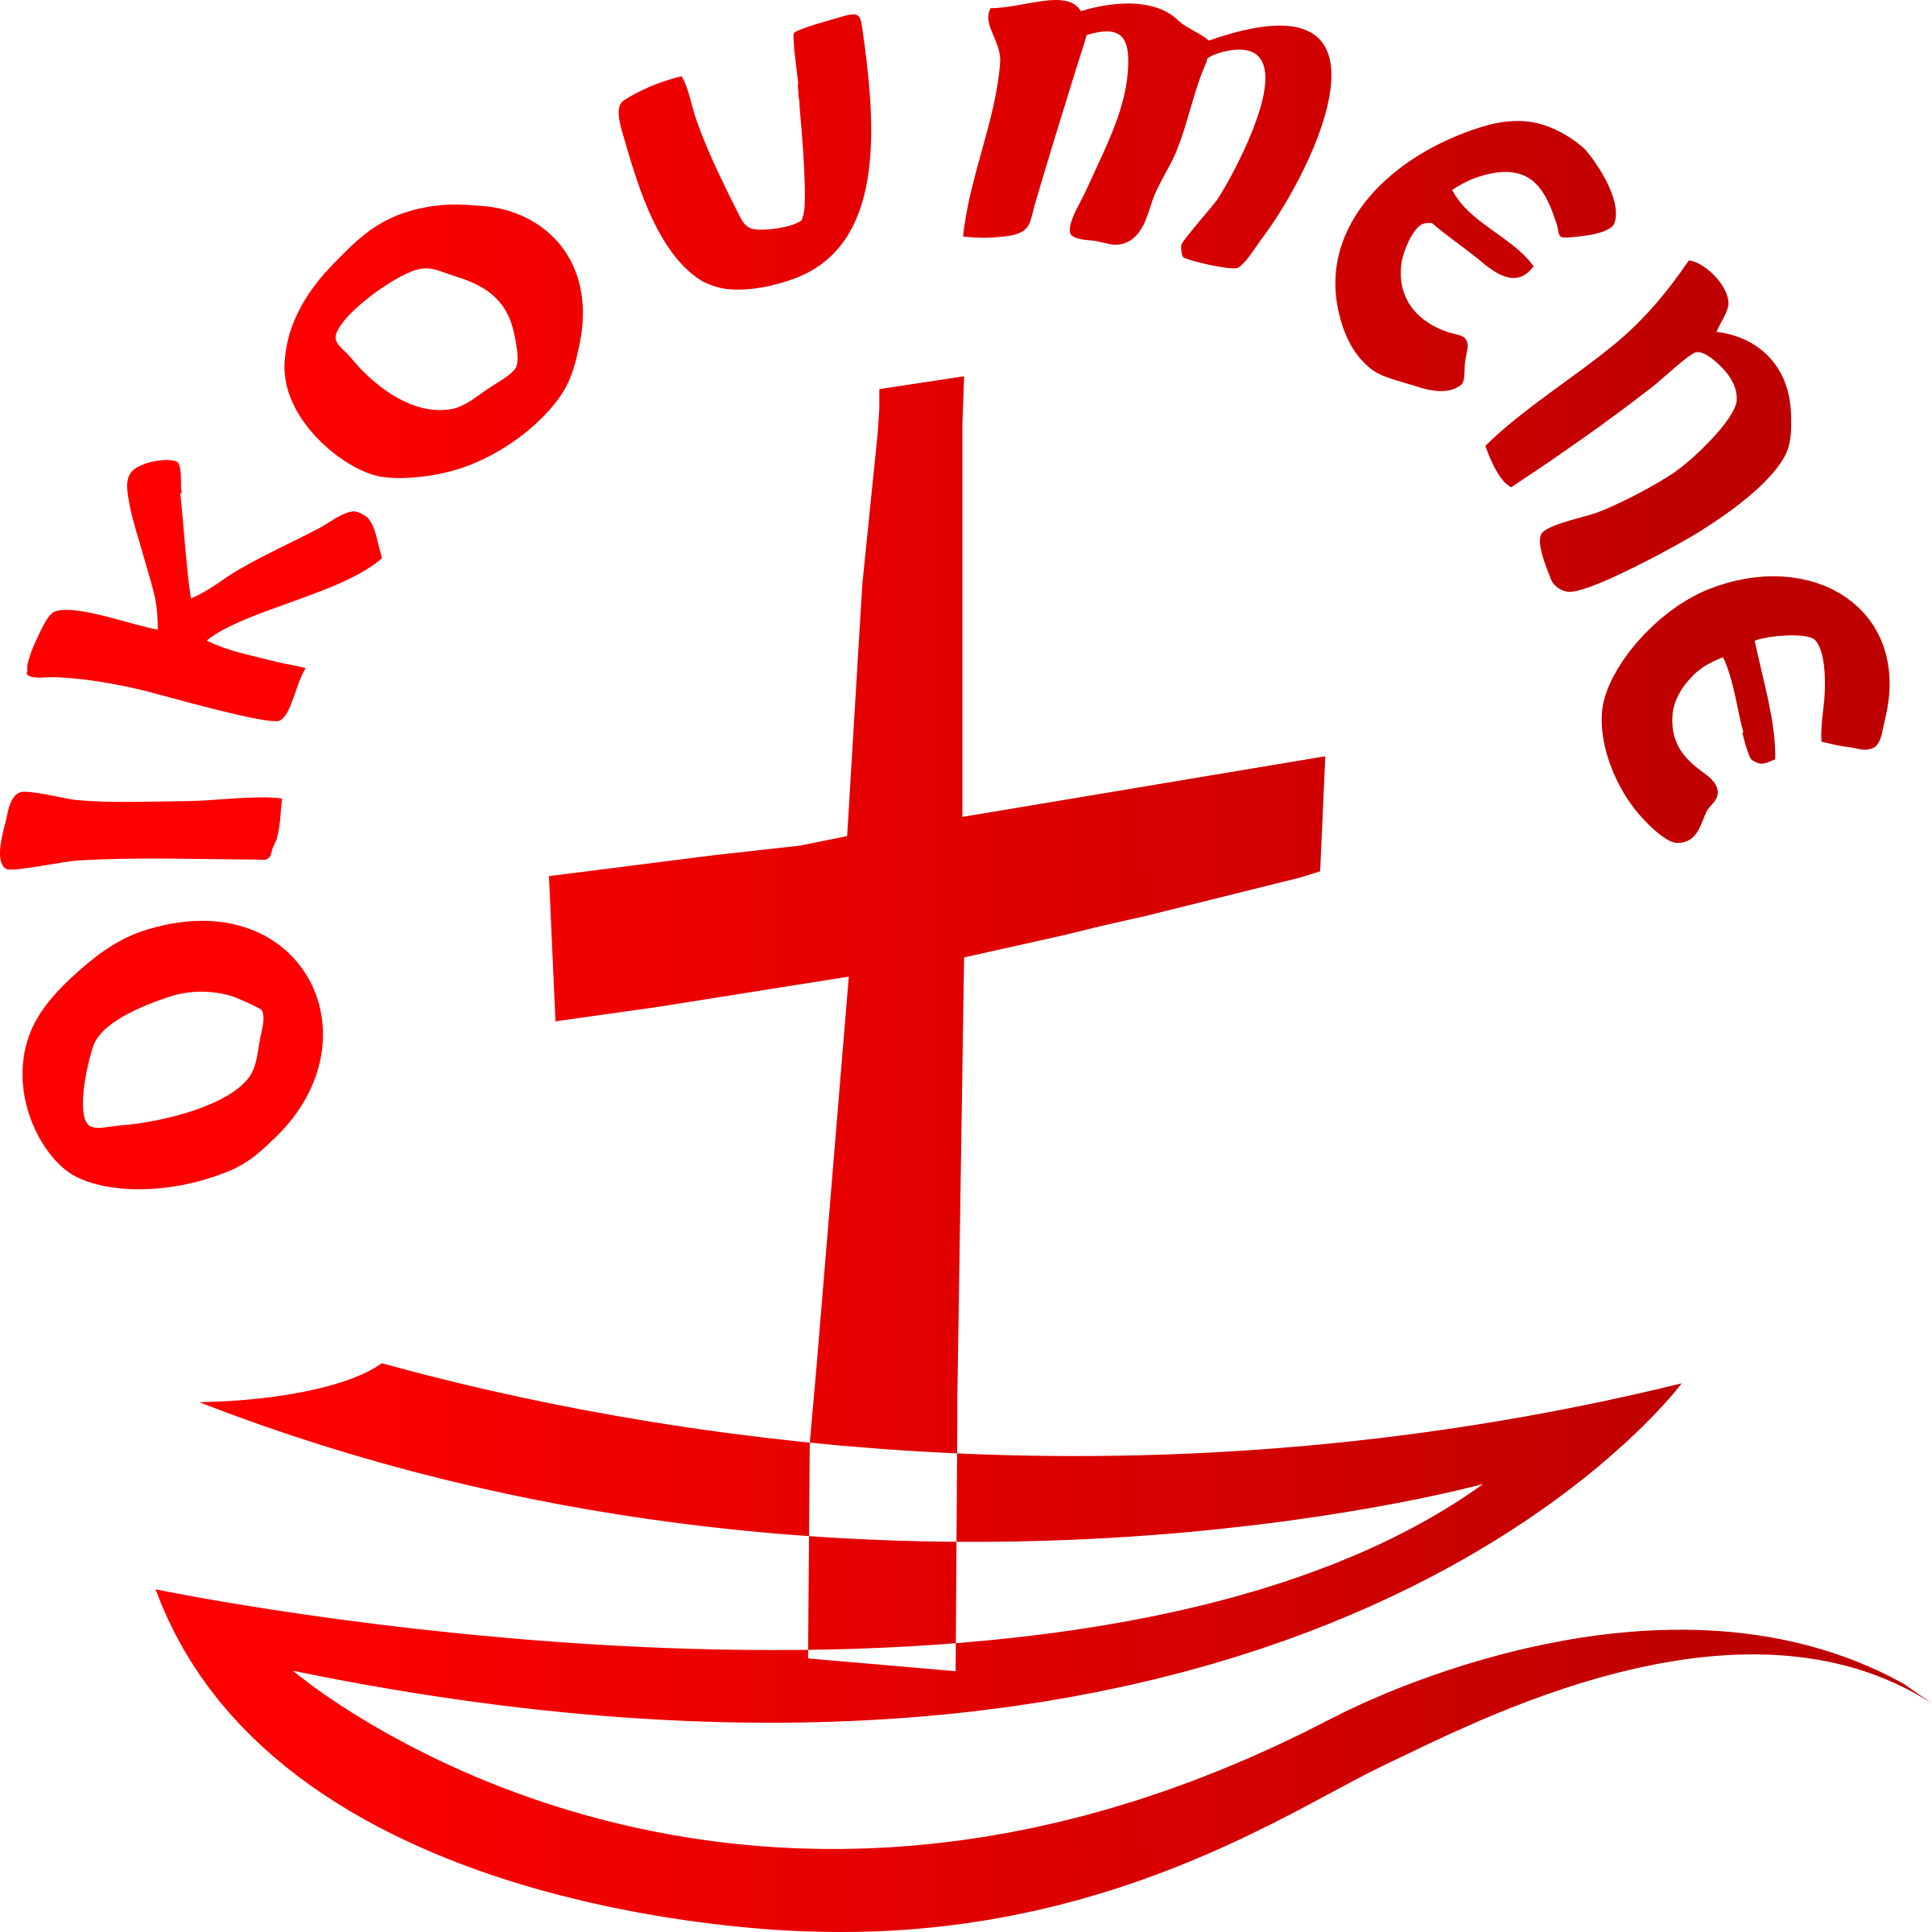 Oikoumene by PhilipBarrington